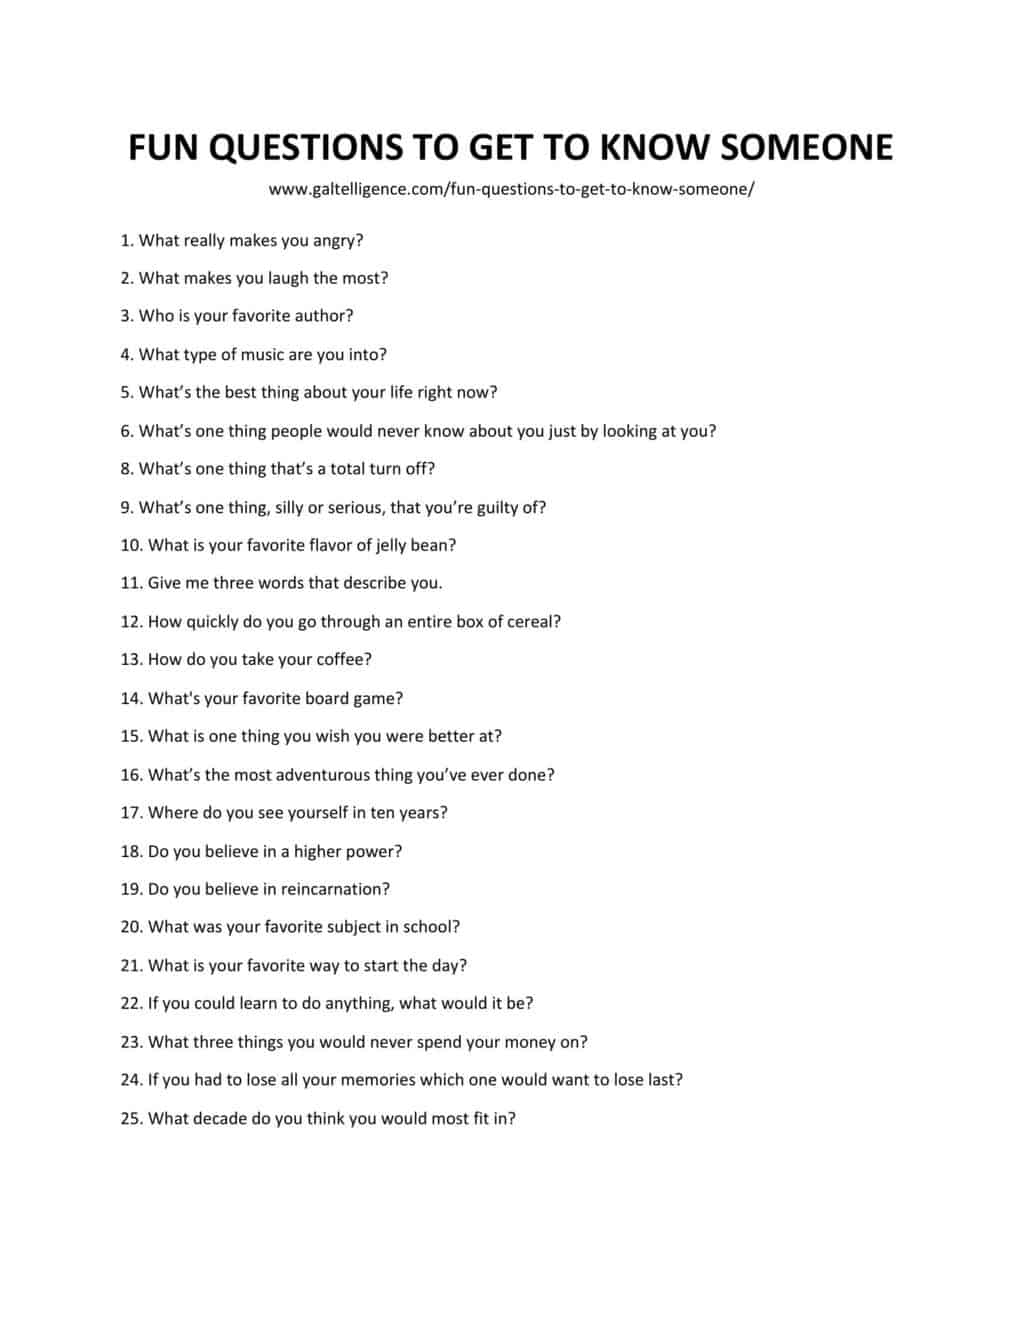 Downlodable and printable lis of fun questions to get to know someone as jpg or pdf